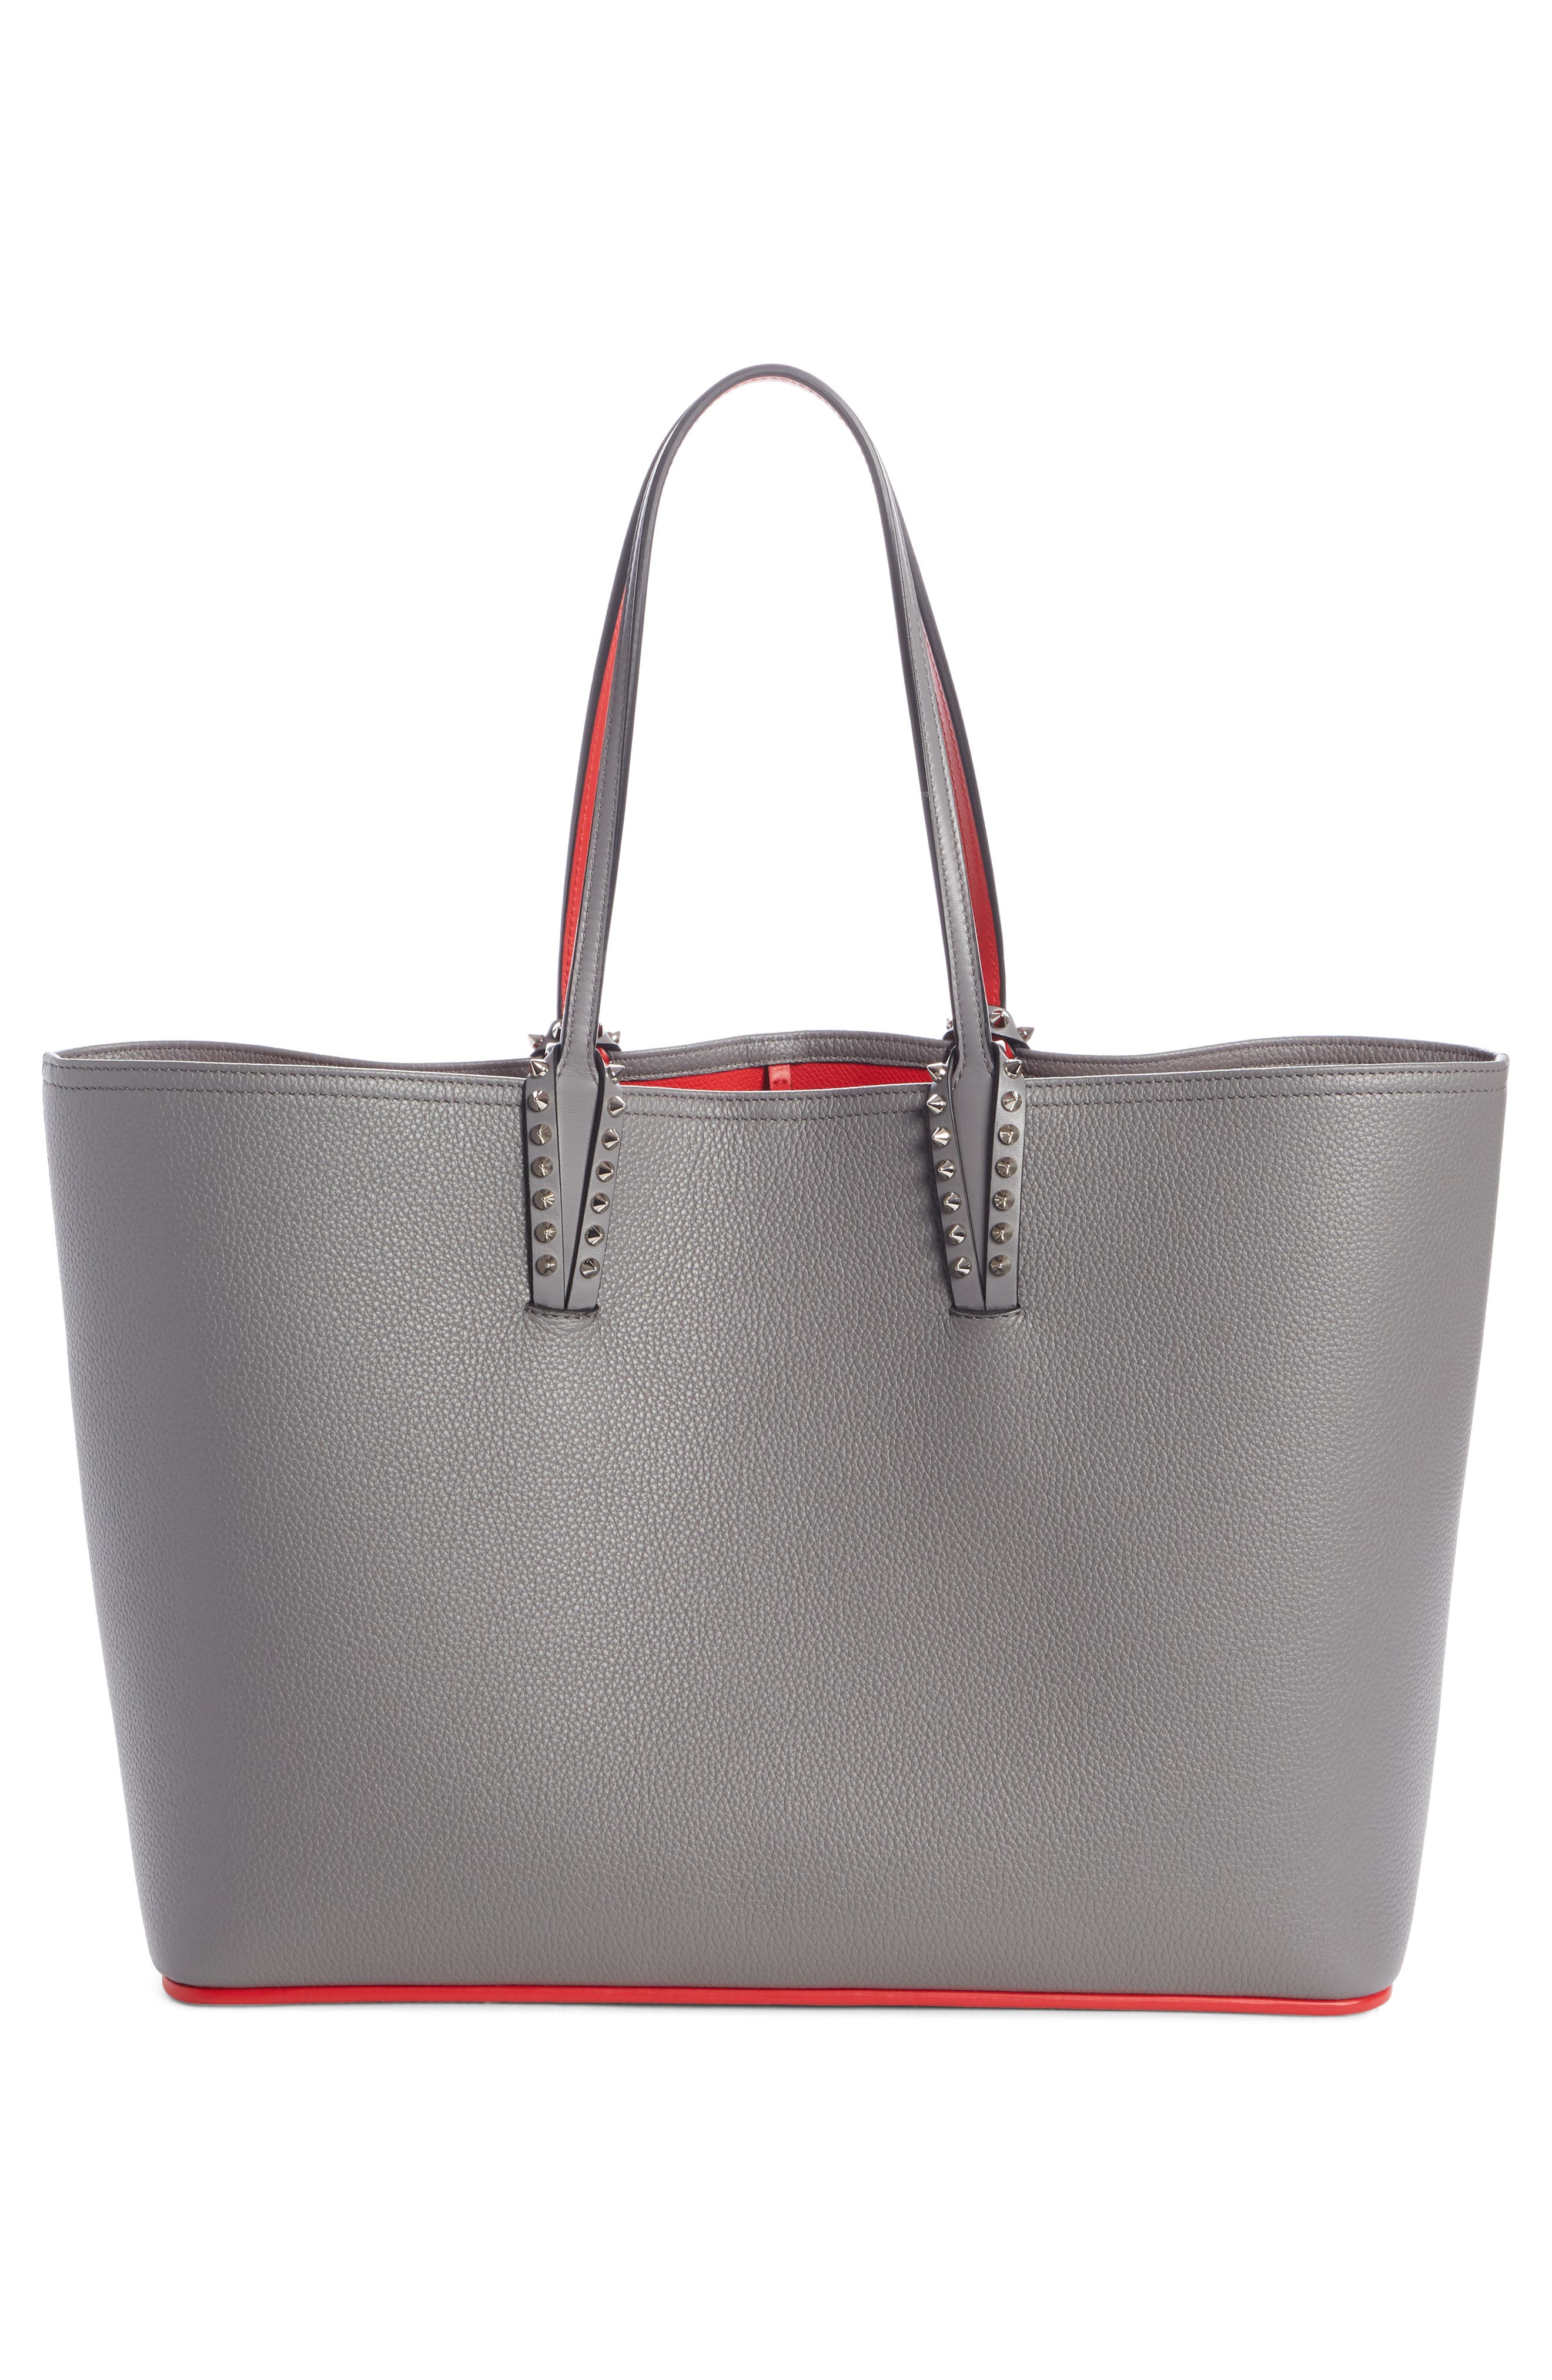 Cabata Calfskin Leather Tote,                             Alternate thumbnail 2, color,                             SHADOW/ SHADOW